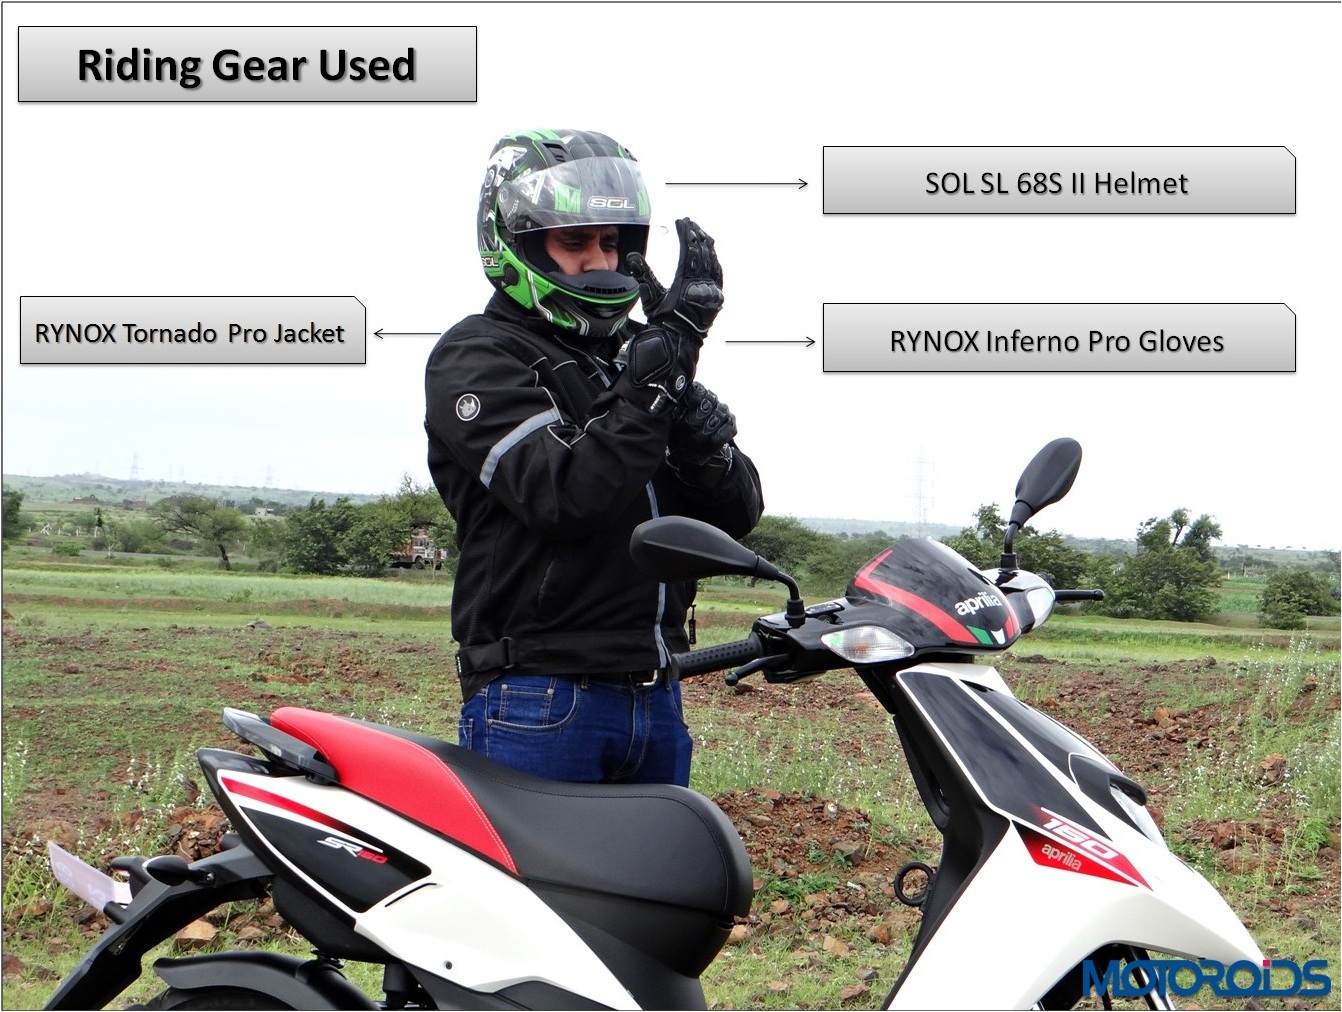 Aprilia SR 150 Review - Riding Gear Shots - Final (1)